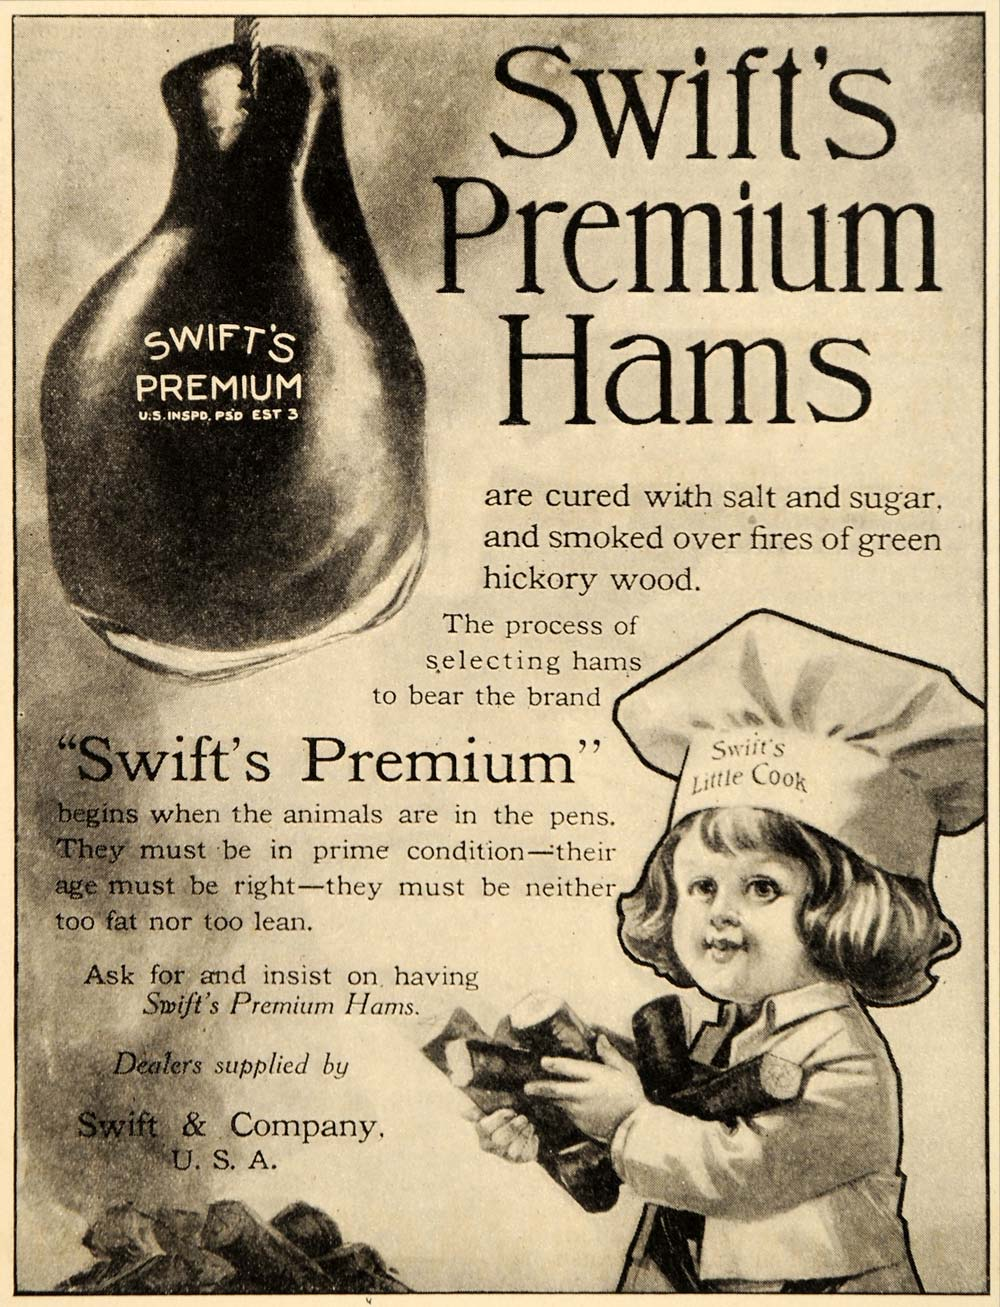 1911 Ad Swift Company Premium Hams Cured Hickory Wood - ORIGINAL ADVERTISING OD1